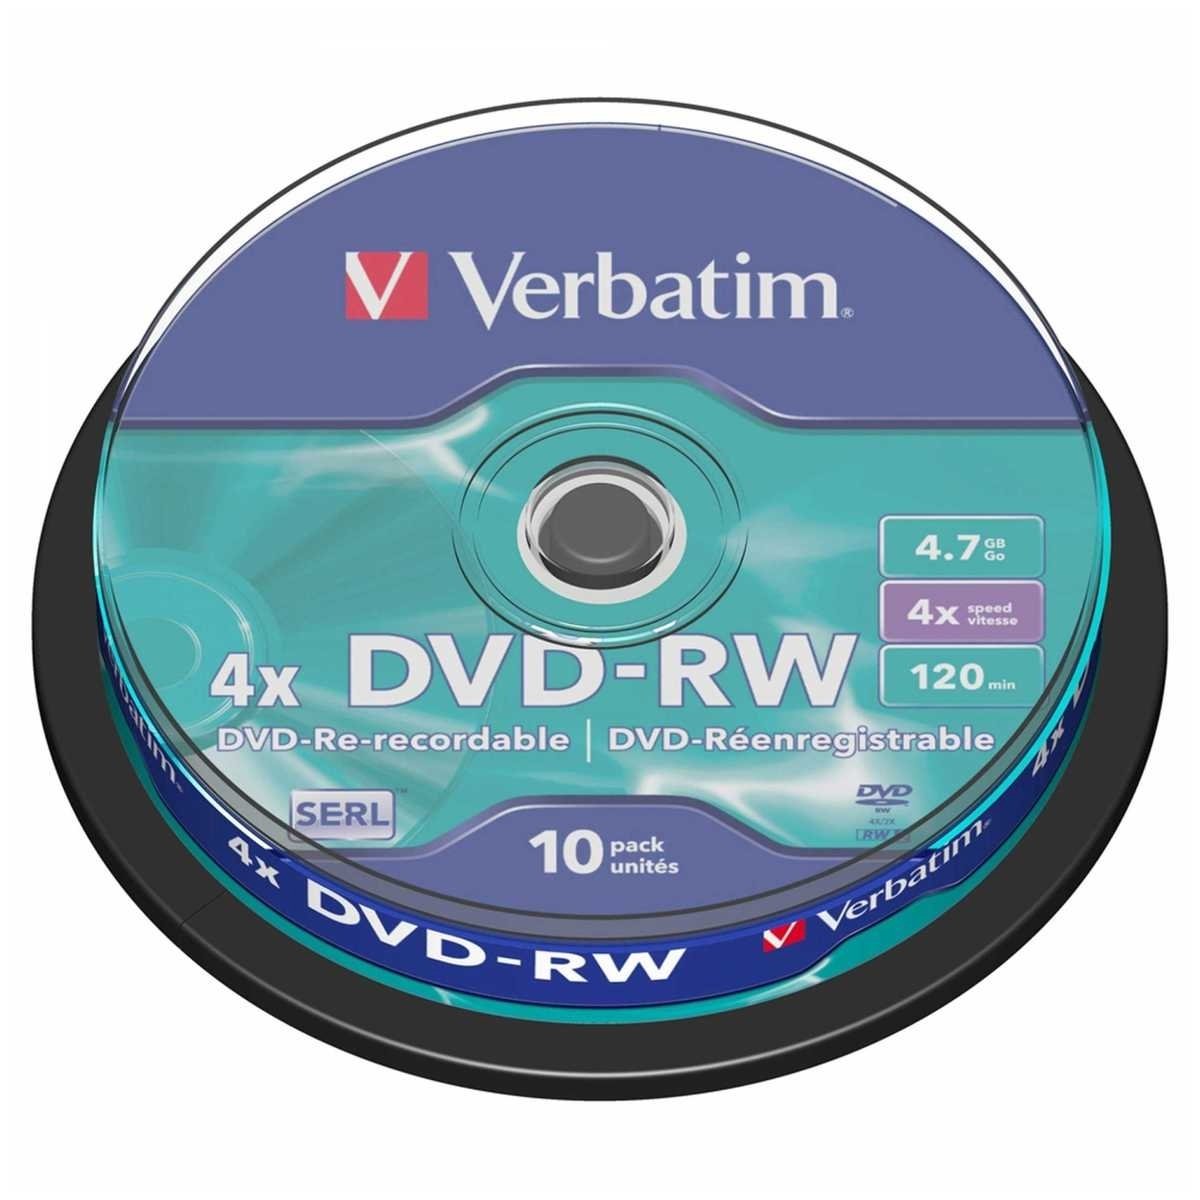 Диск DVD-RW Verbatim 4.7Gb 4x Cake Box (10 шт) the great science fiction